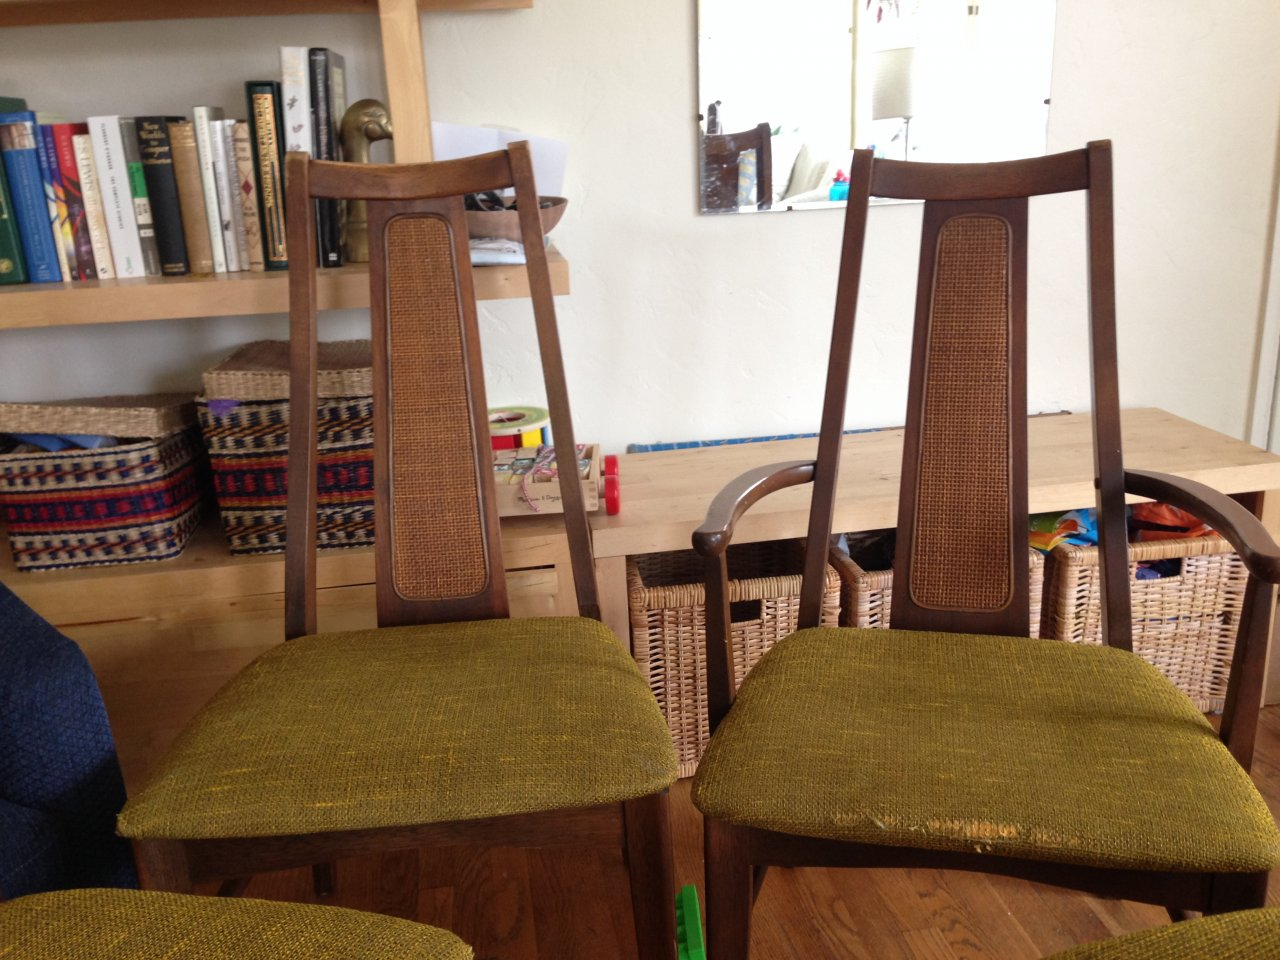 The Chairs And Table Legs Are Solid Wood, But The Table Top Is Particle  Board With A Veneer. The Chairs Have A Cool Rattan Inlay. Any Info Is  Appreciated  ...